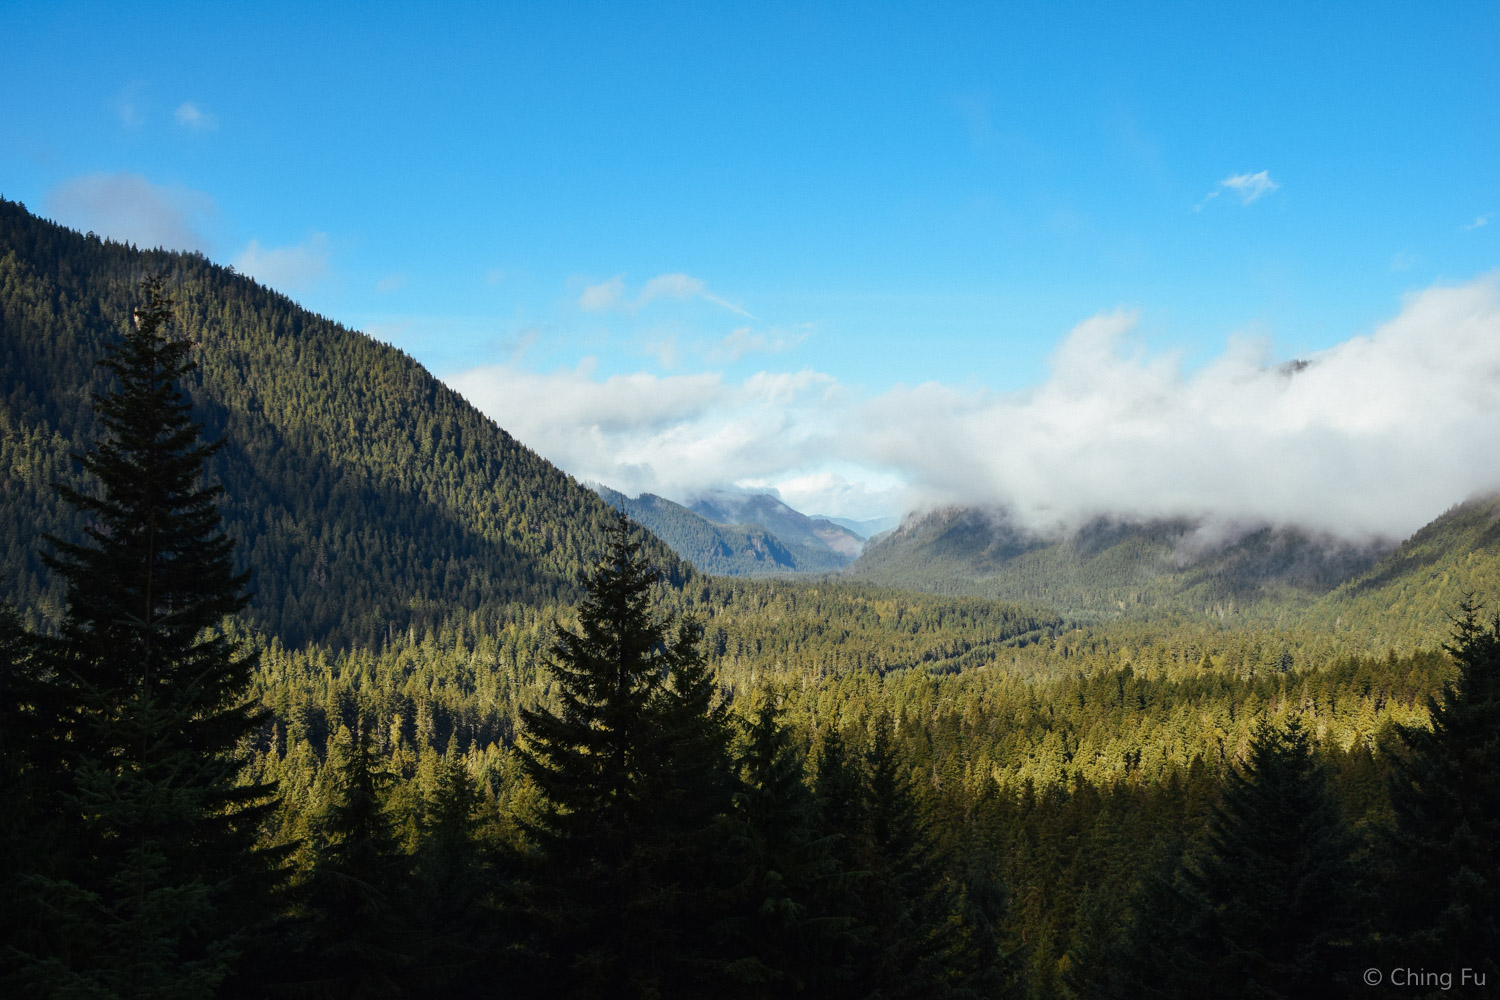 This is the valley you have to drive through to get to Crystal Mountain Resort, which is located in Mt. Baker-Snoqualmie National Forest.